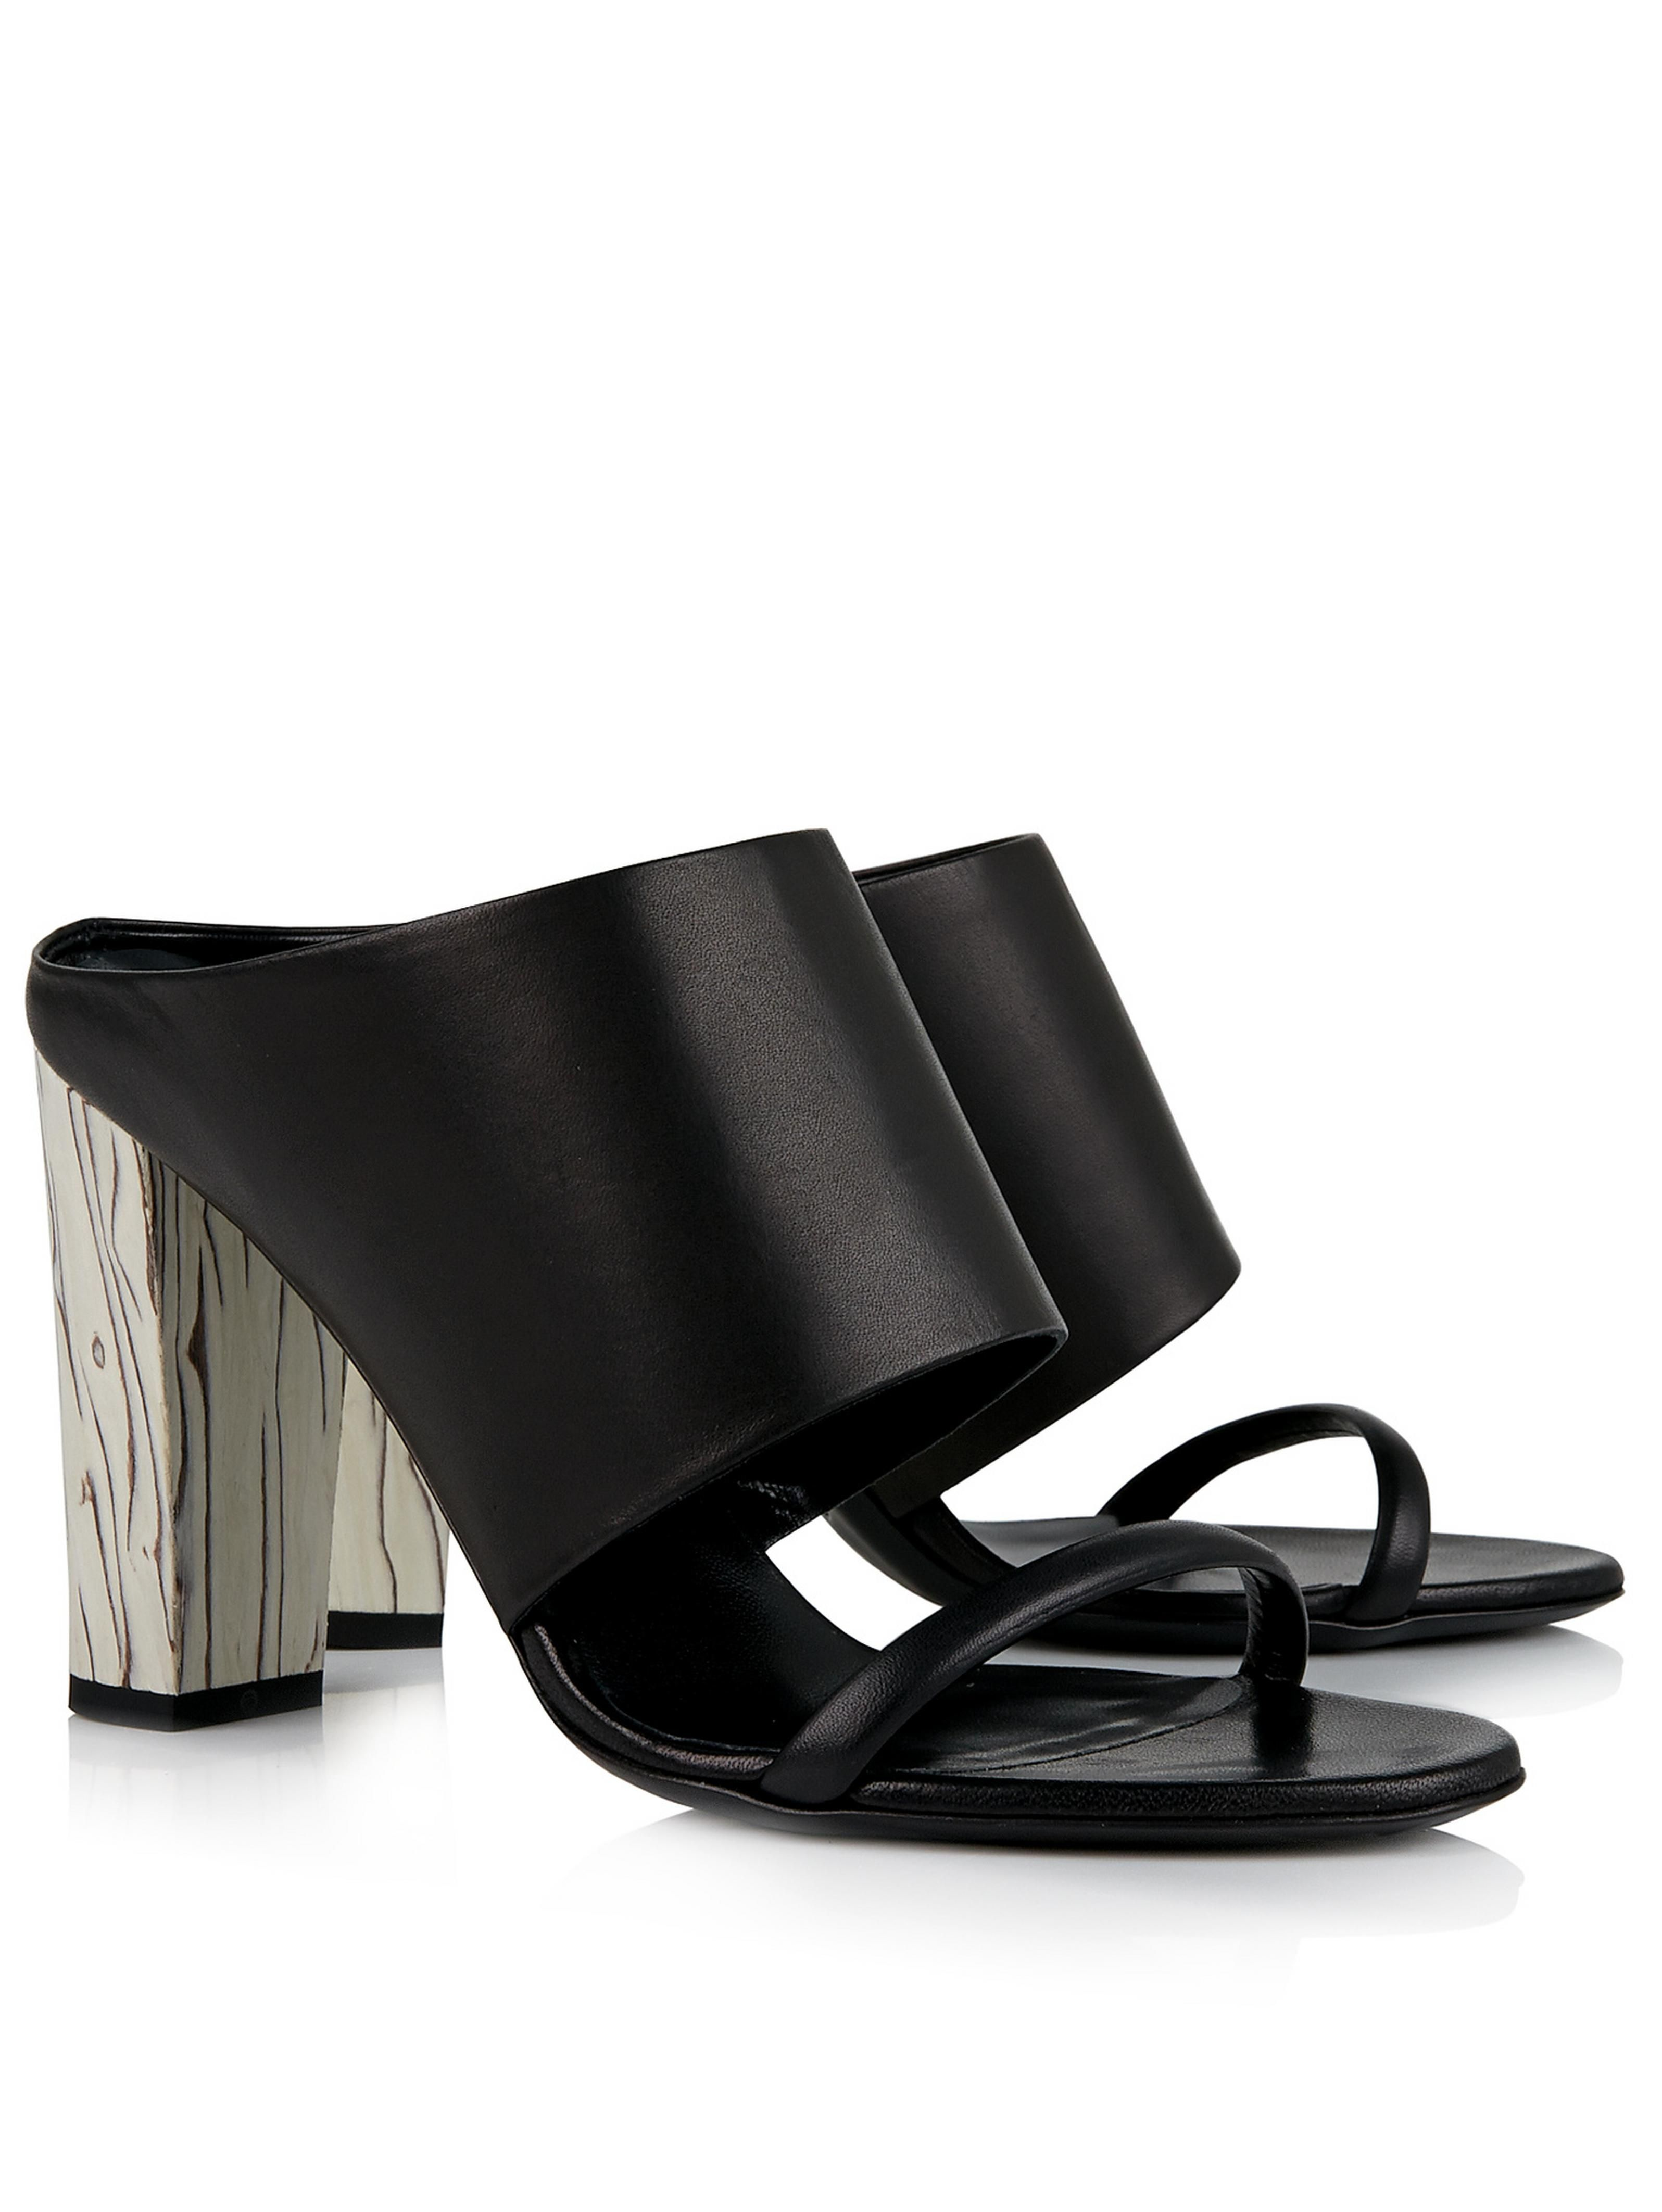 clearance online official site McQ Alexander McQueen Open-toe mules free shipping really 2014 for sale buy cheap outlet locations discount professional sbSLpssF8